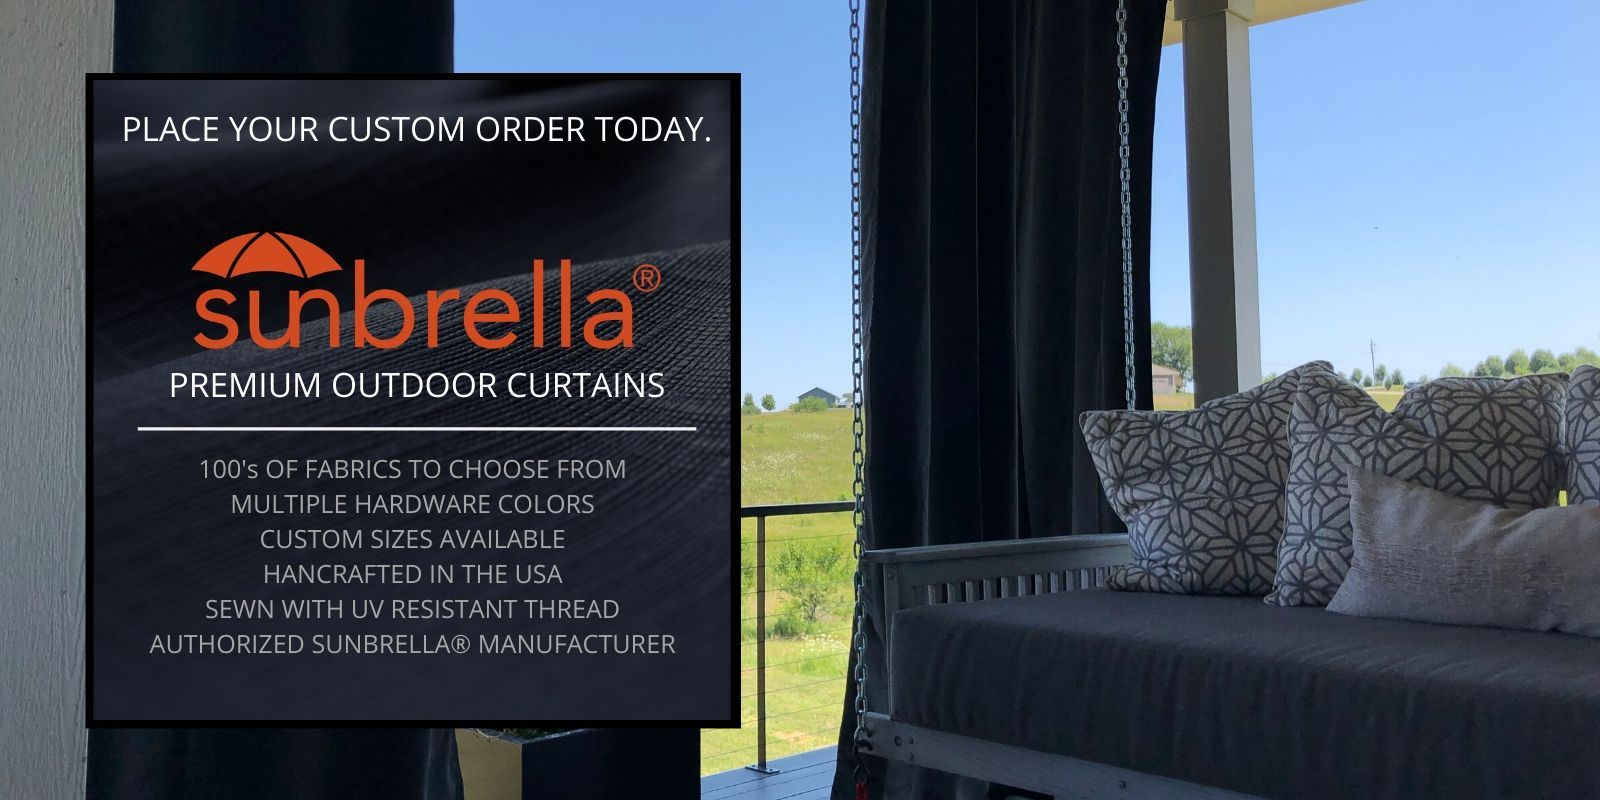 Custom Sunbrella Outdoor Curtains